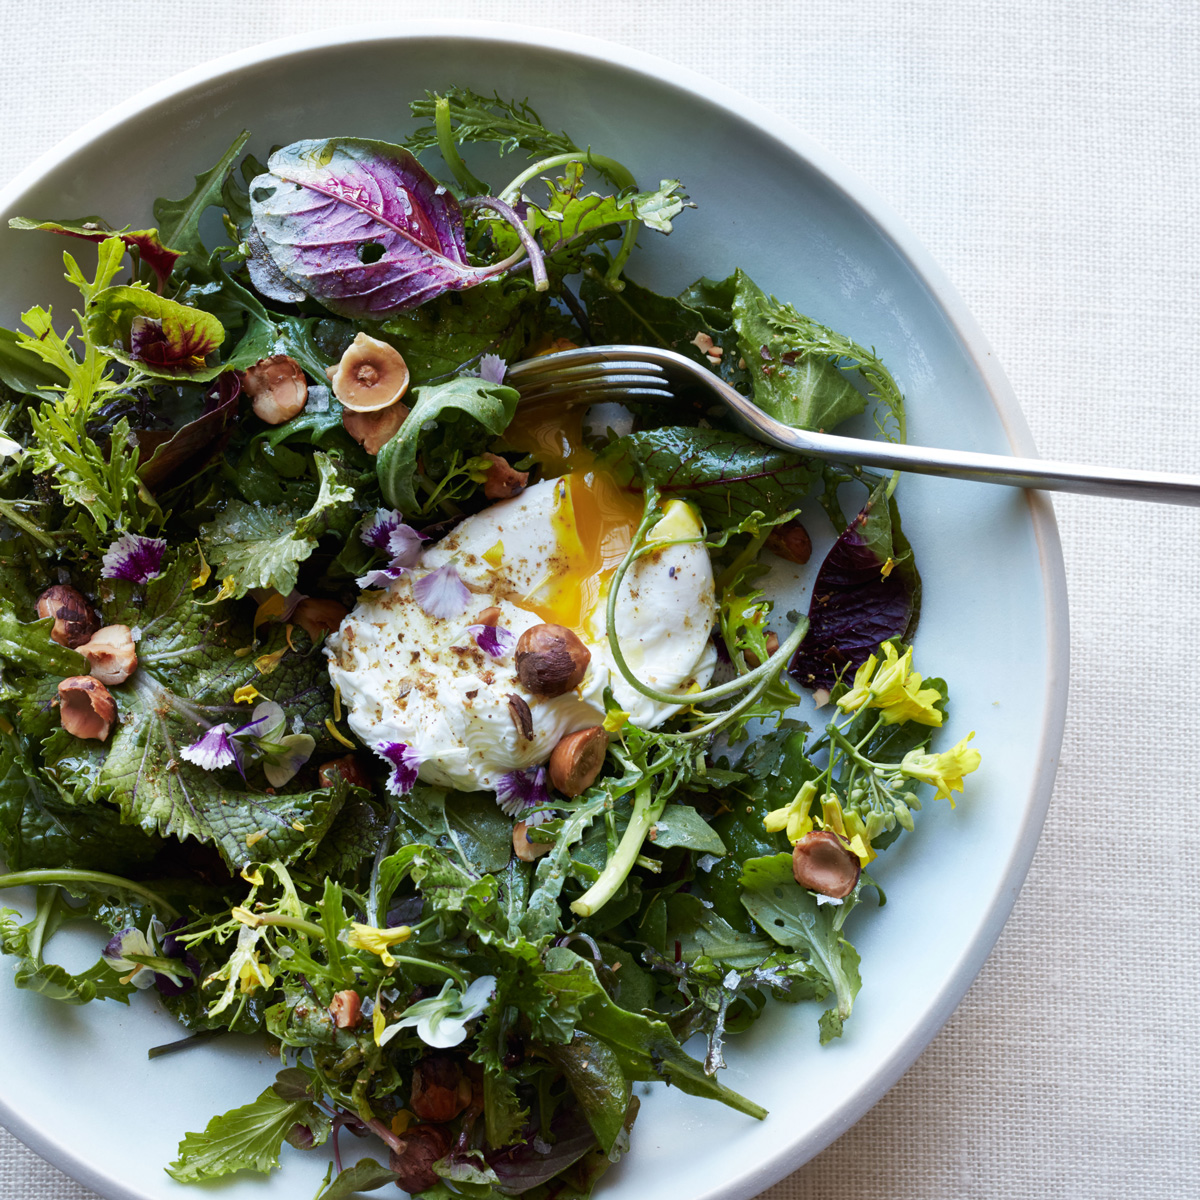 Mixed Greens with Poached Eggs, Hazelnuts and Spices